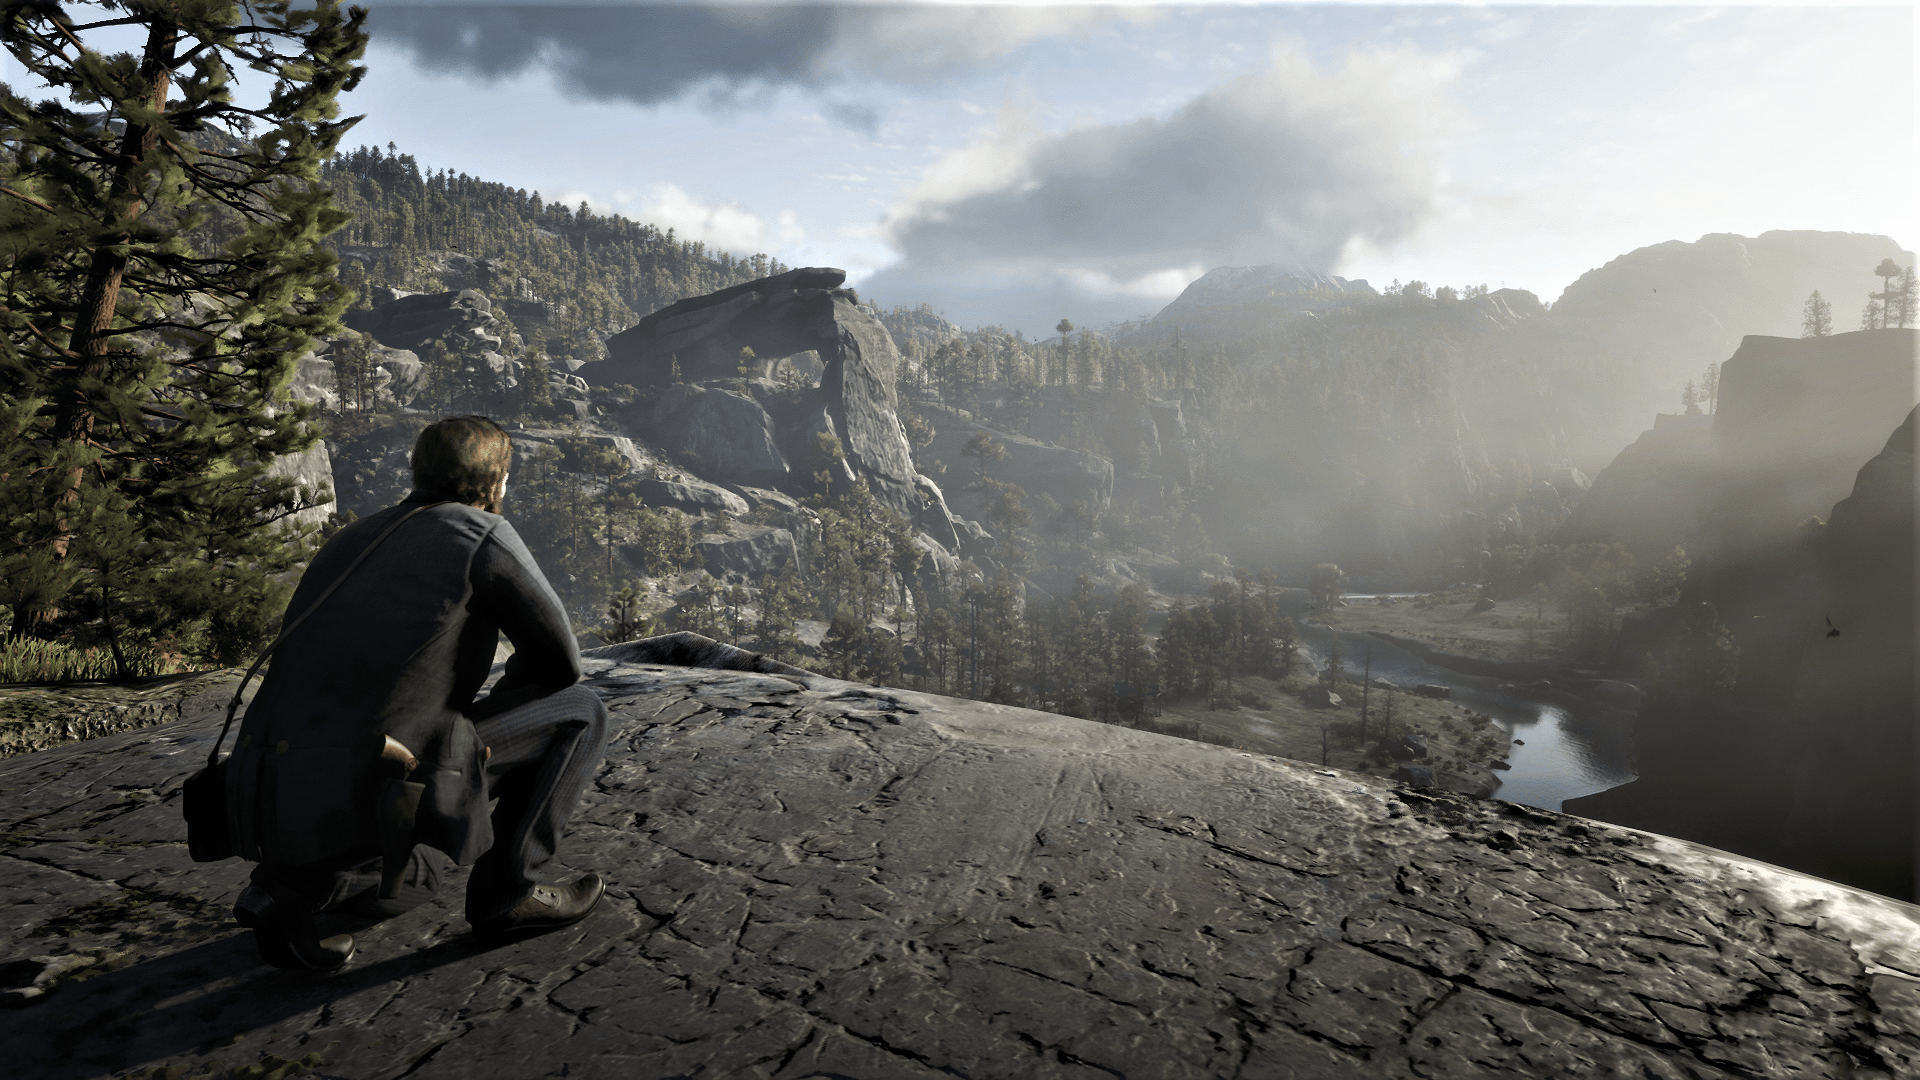 Trucchi E Codici Red Dead Redemption 2 Per Ps4, Xbox E Pc 15 - Hynerd.it